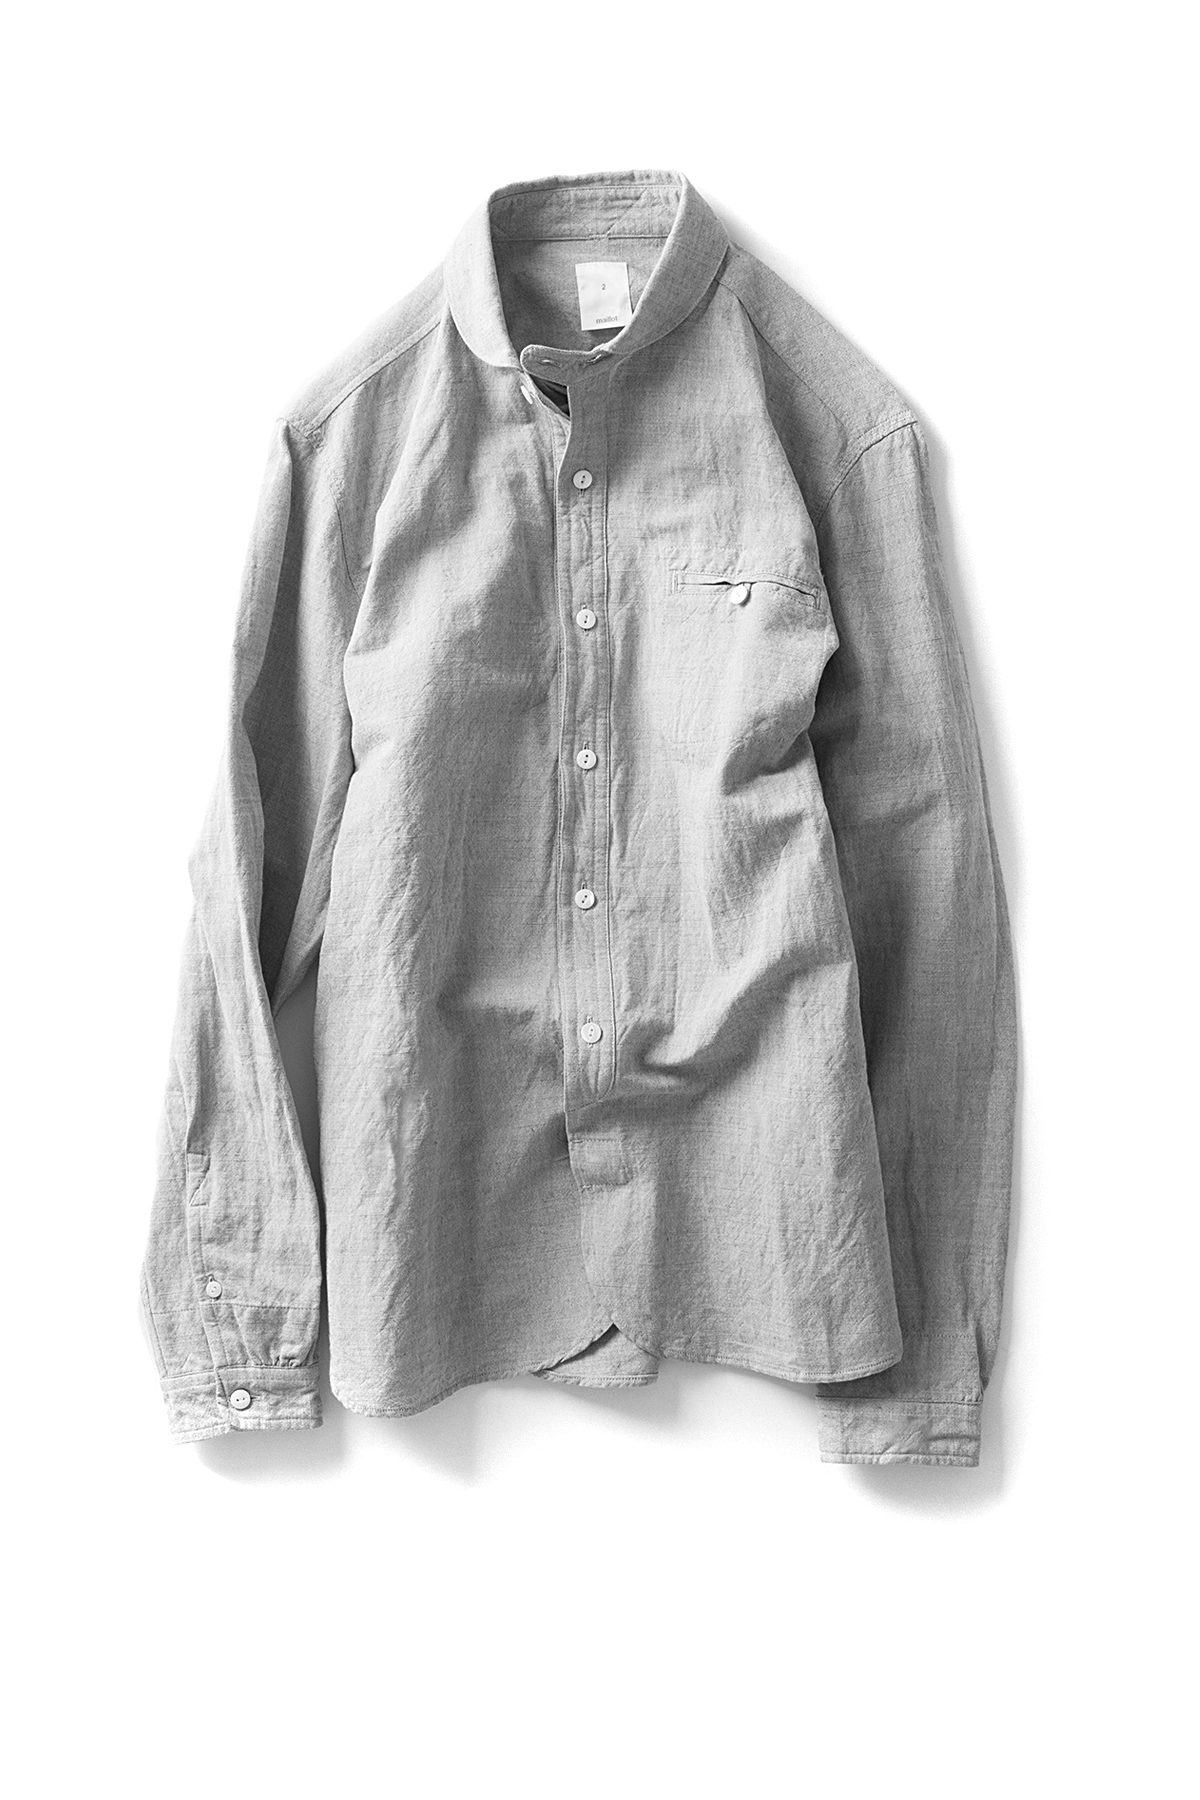 maillot : Sunset work Shirt (Grey)